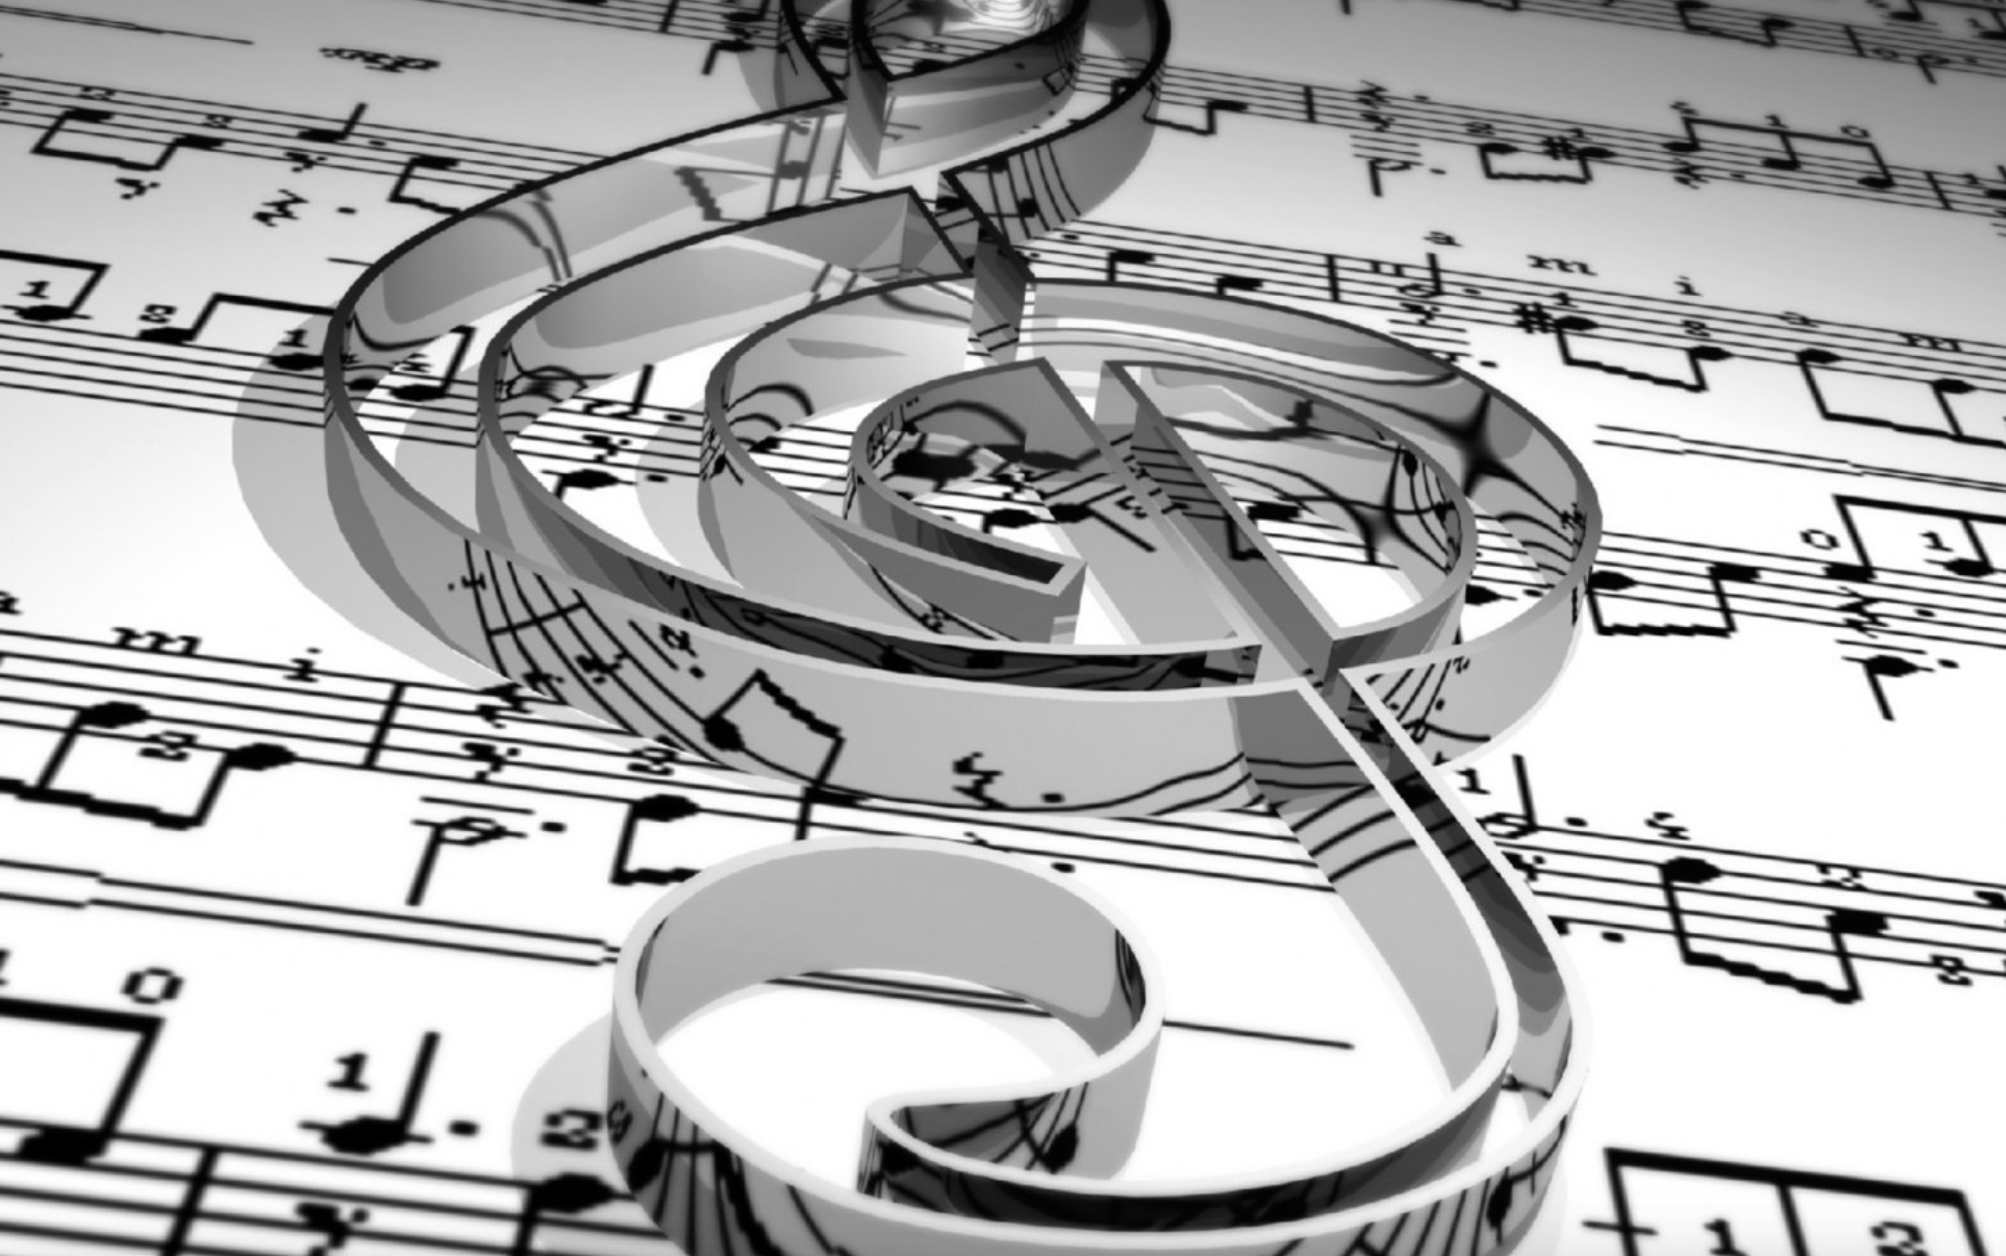 Solfeggio and Theory of Music